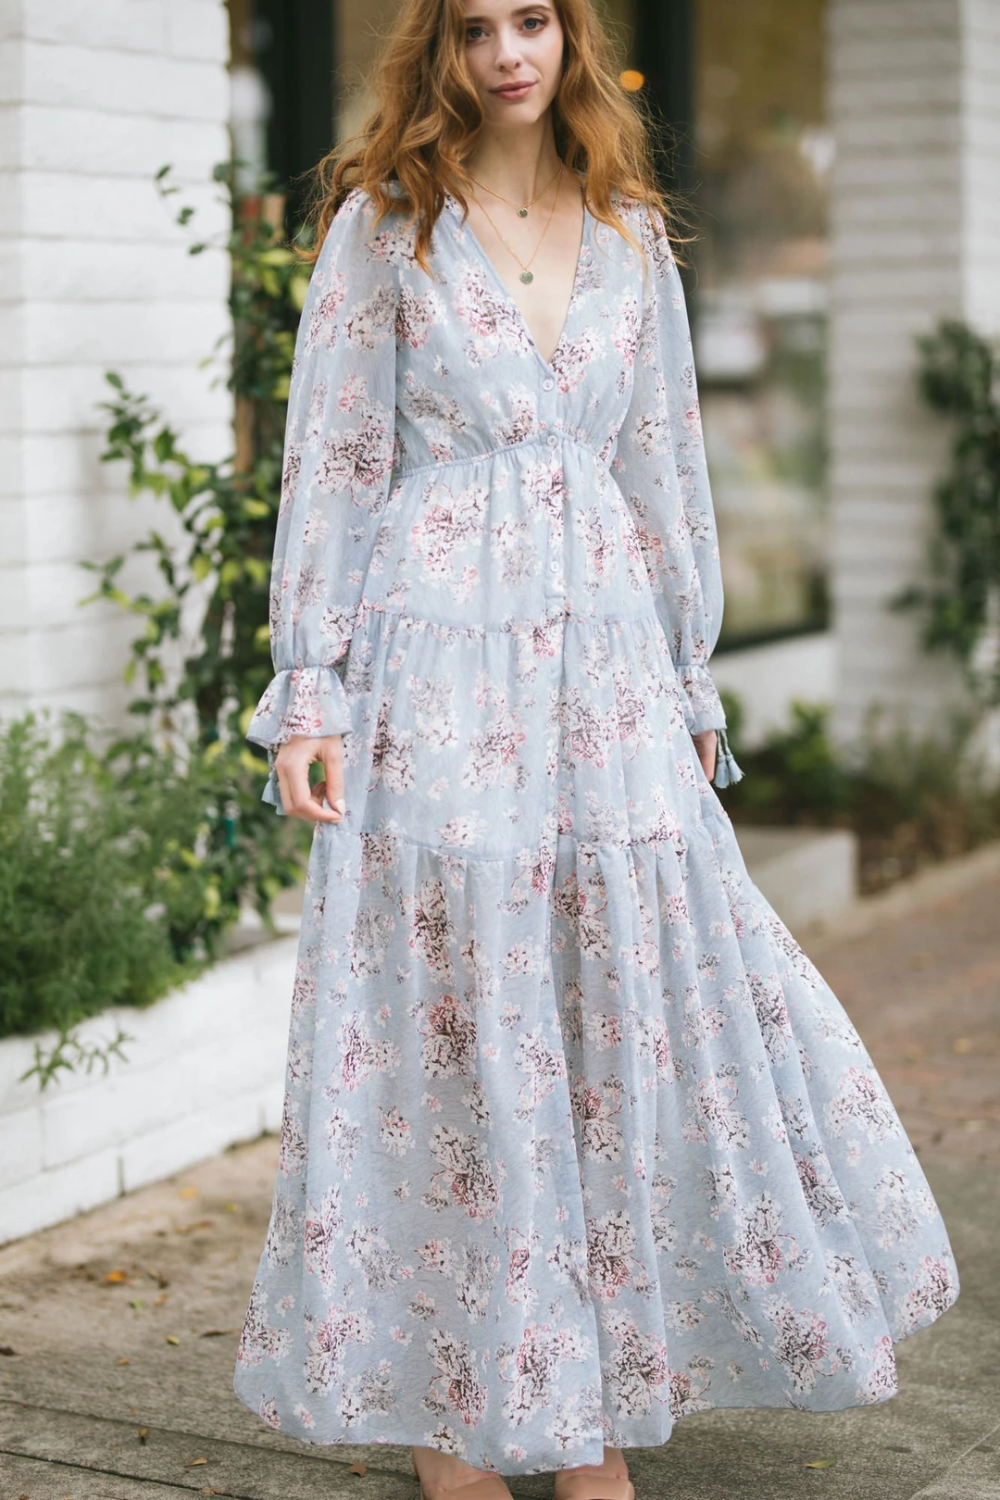 Shop The Margot Floral Long Sleeve Maxi Dress Boutique Clothing Featuring Fresh Feminine And Long Sleeve Floral Maxi Dress Long Sleeve Maxi Dress Maxi Dress [ 1500 x 1000 Pixel ]